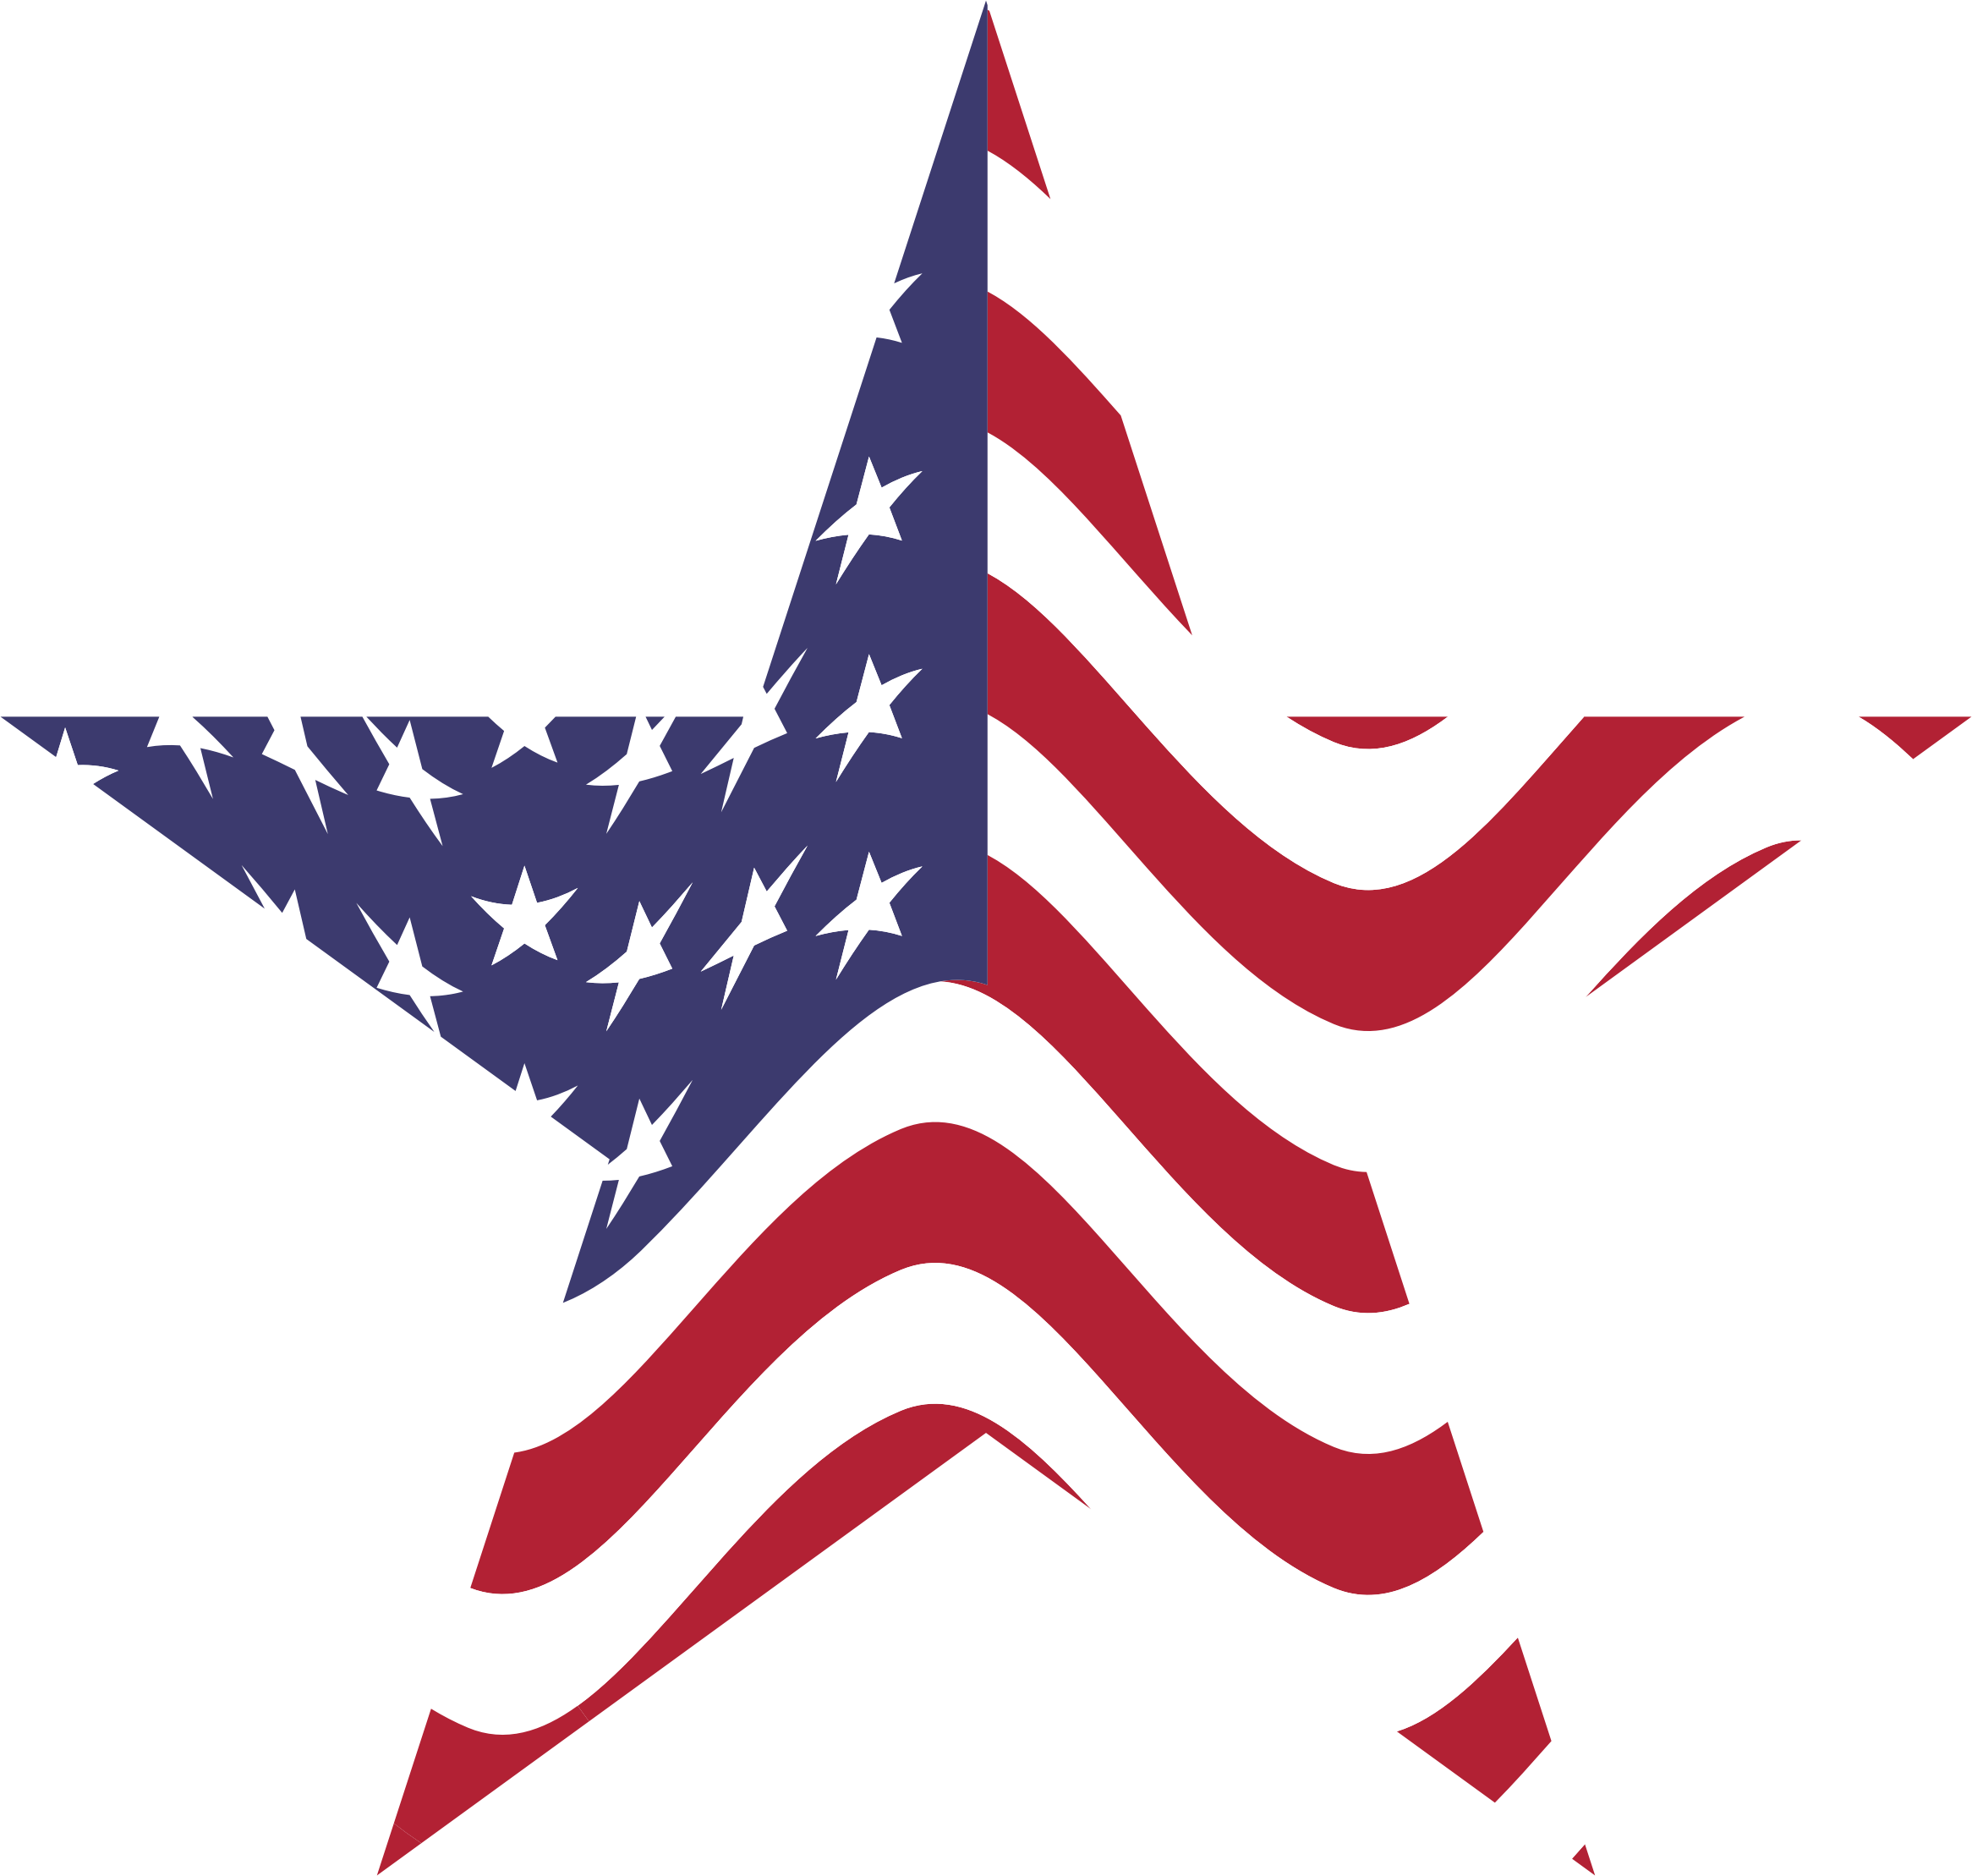 American flag star by. Patriotic clipart united we stand